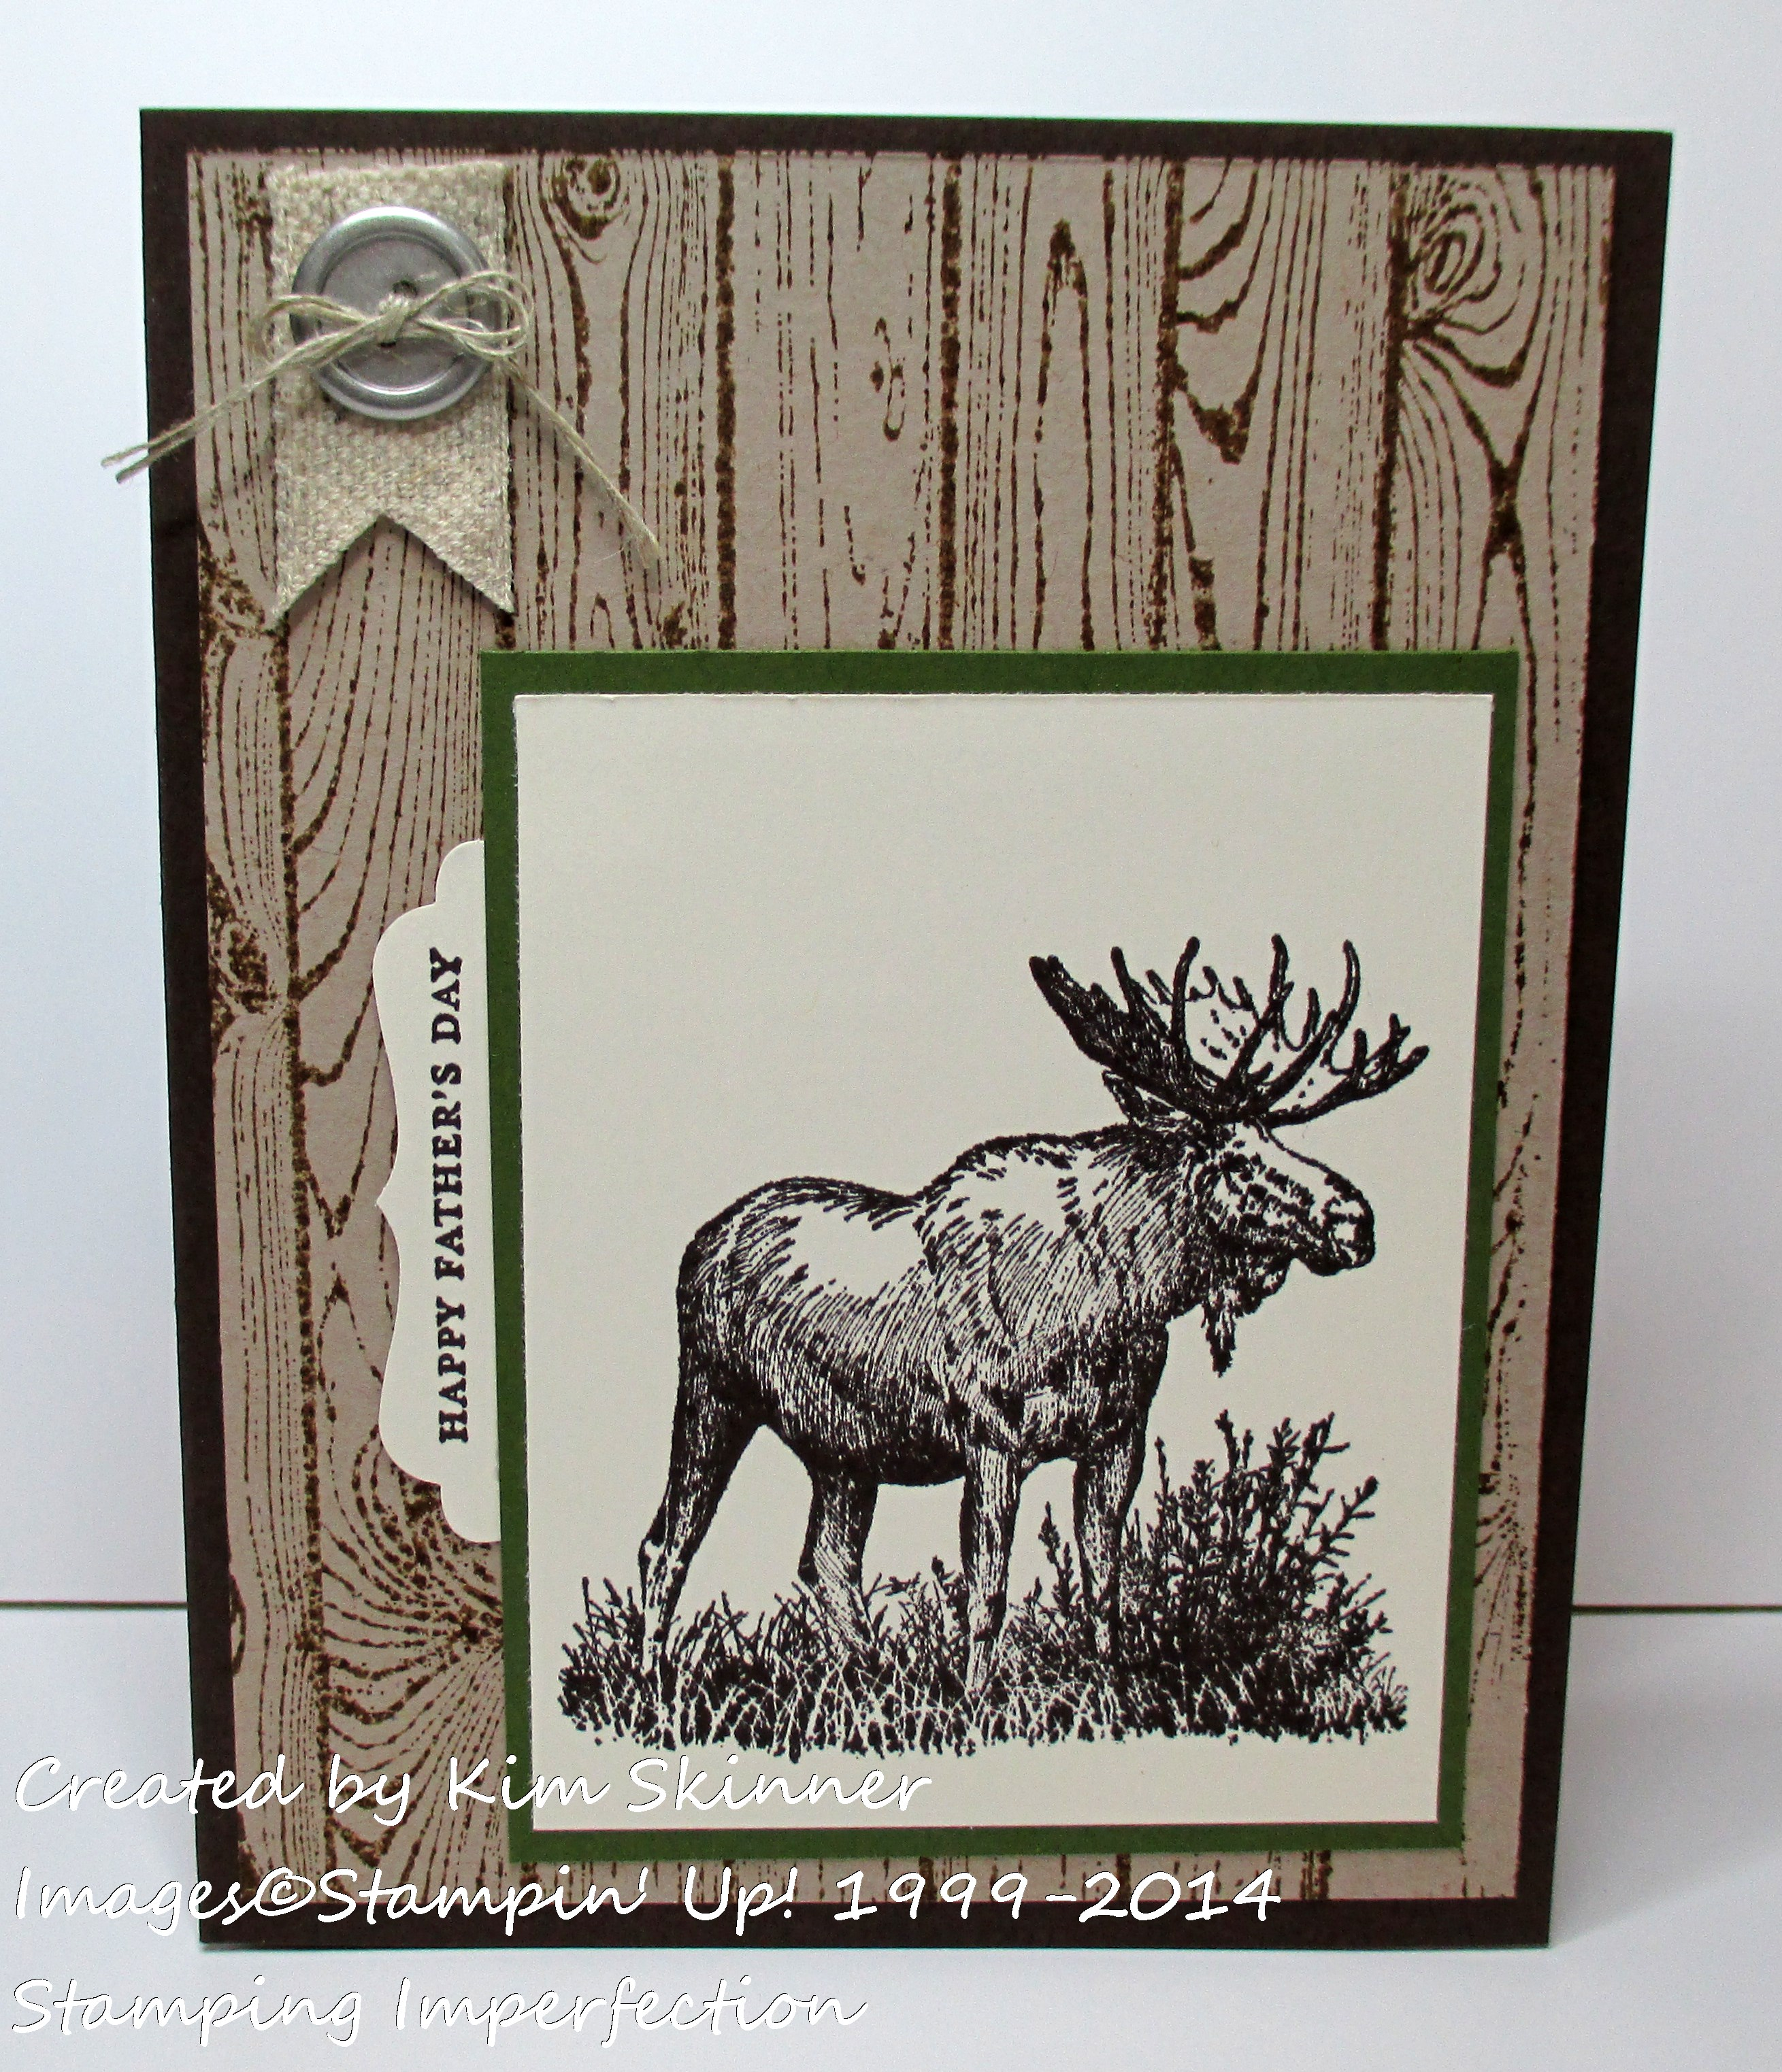 stamping imperfection fabulous father's day card